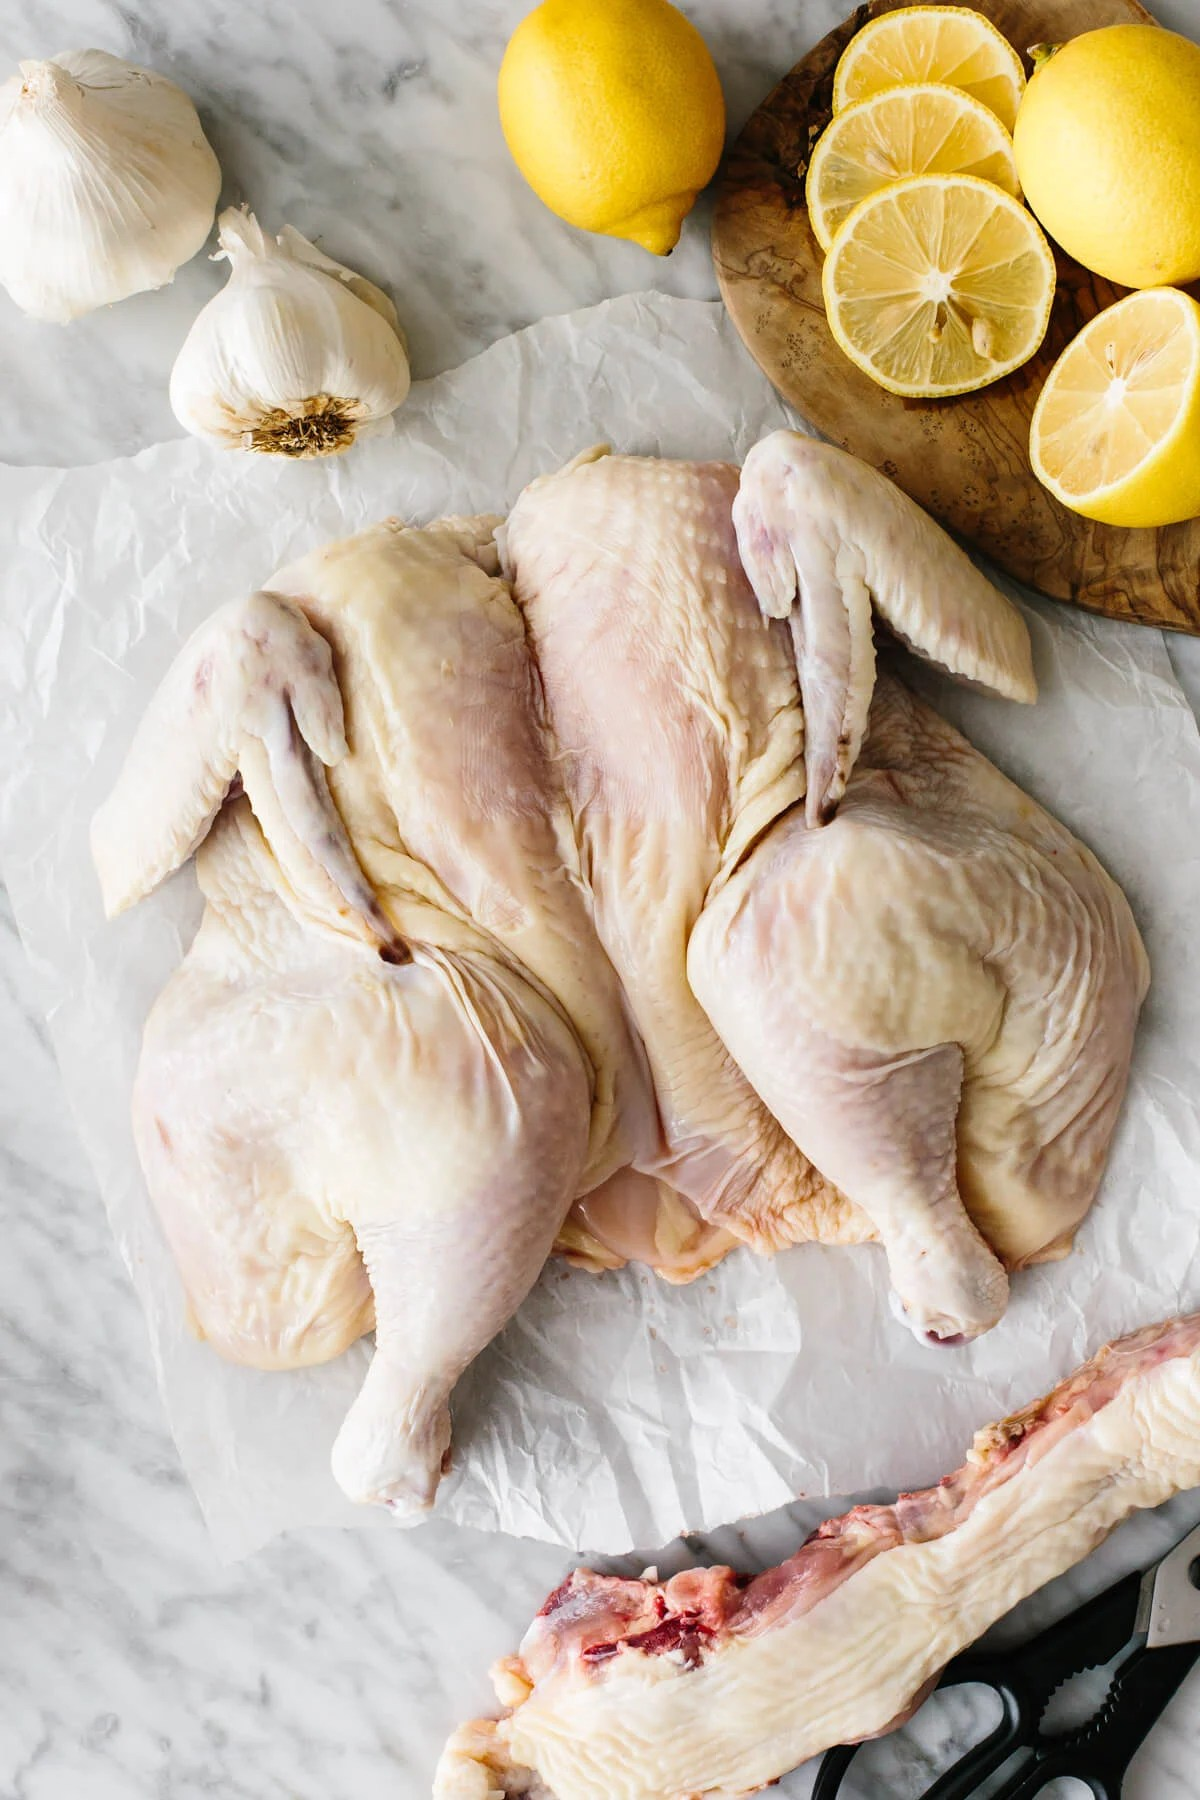 A spatchcocked chicken on a table with lemons.